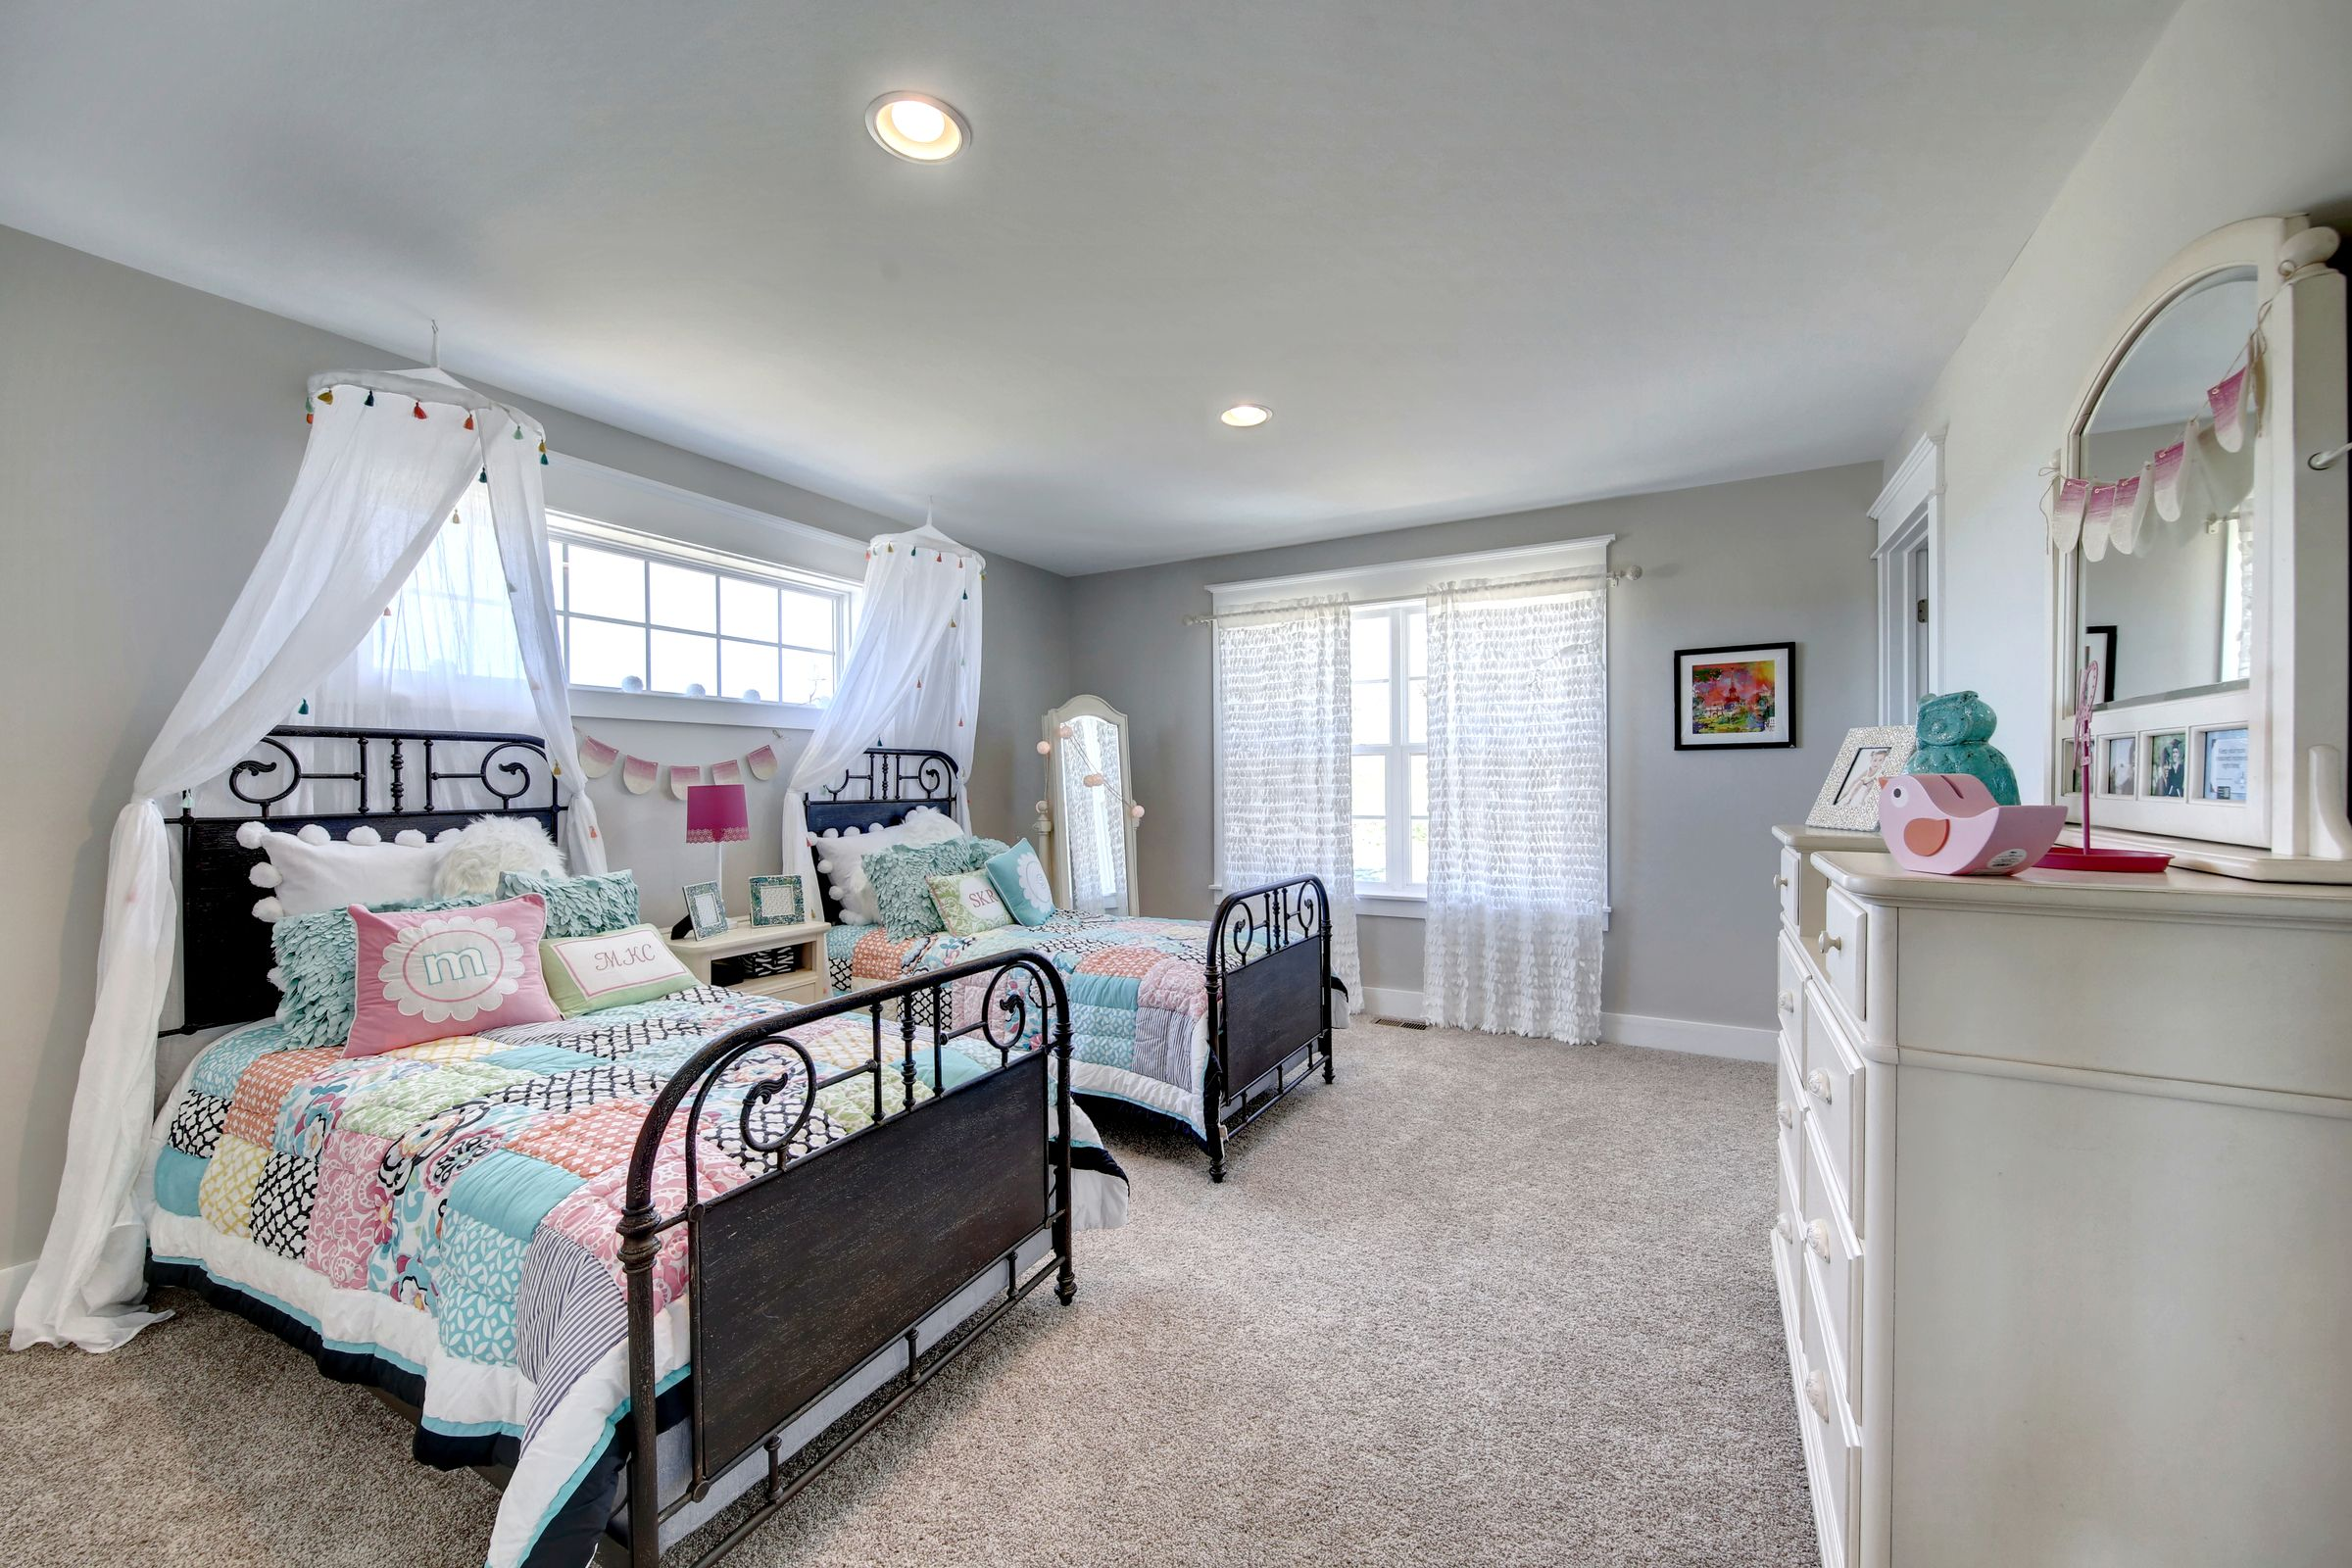 Bedroom featured in the Ethan English Cottage By Keystone Custom Homes in Lancaster, PA